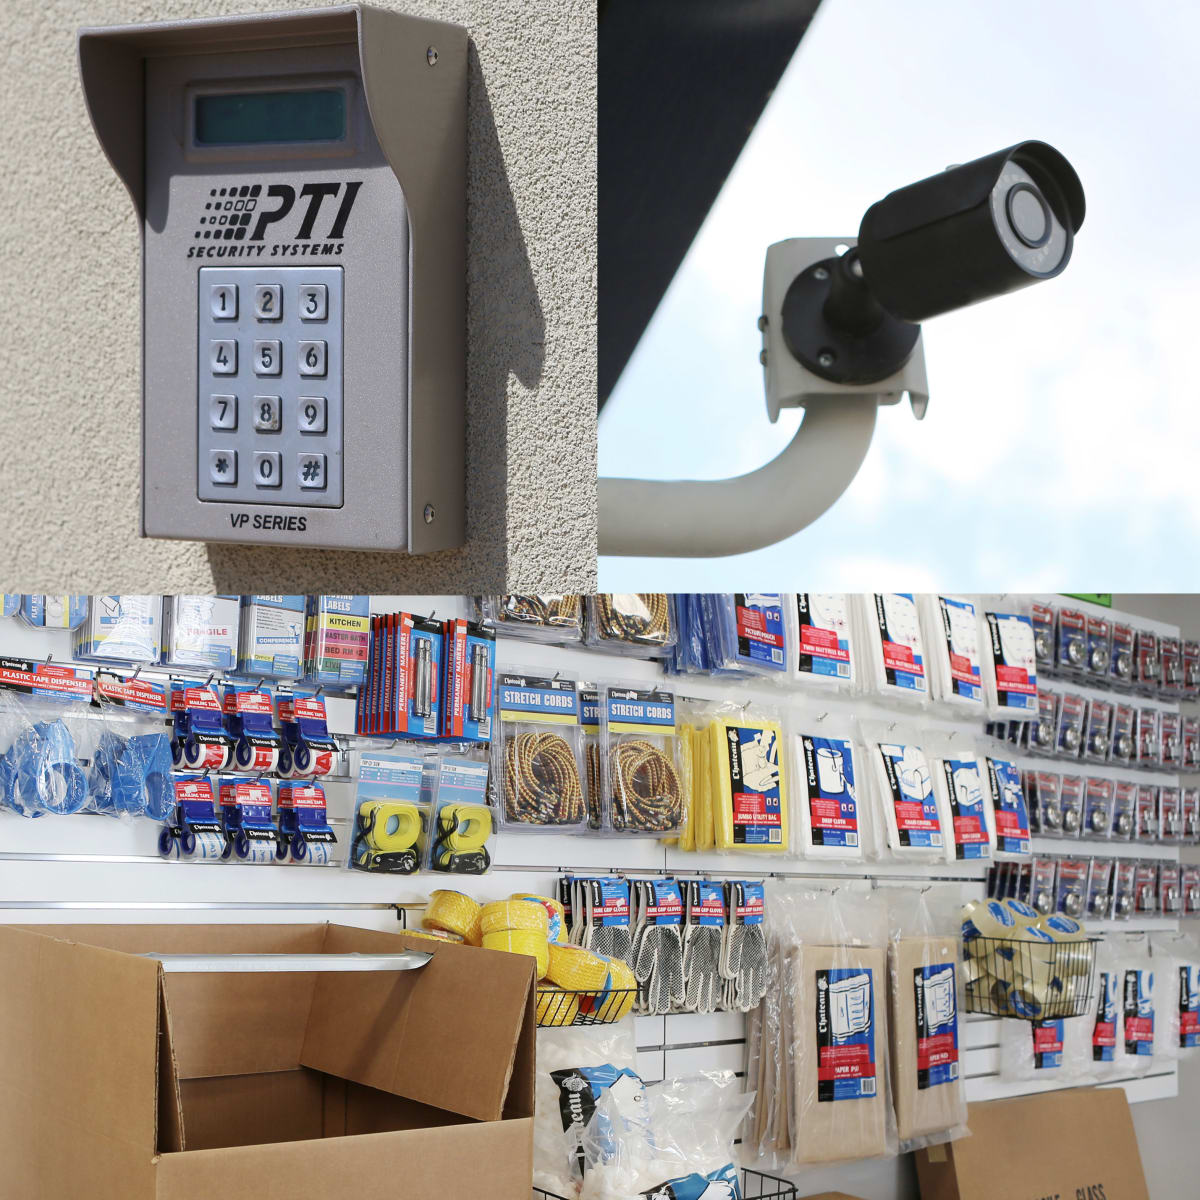 We provide 24 hour security monitoring and sell various moving and packing supplies at StoreSmart Self-Storage in Spring Lake, North Carolina